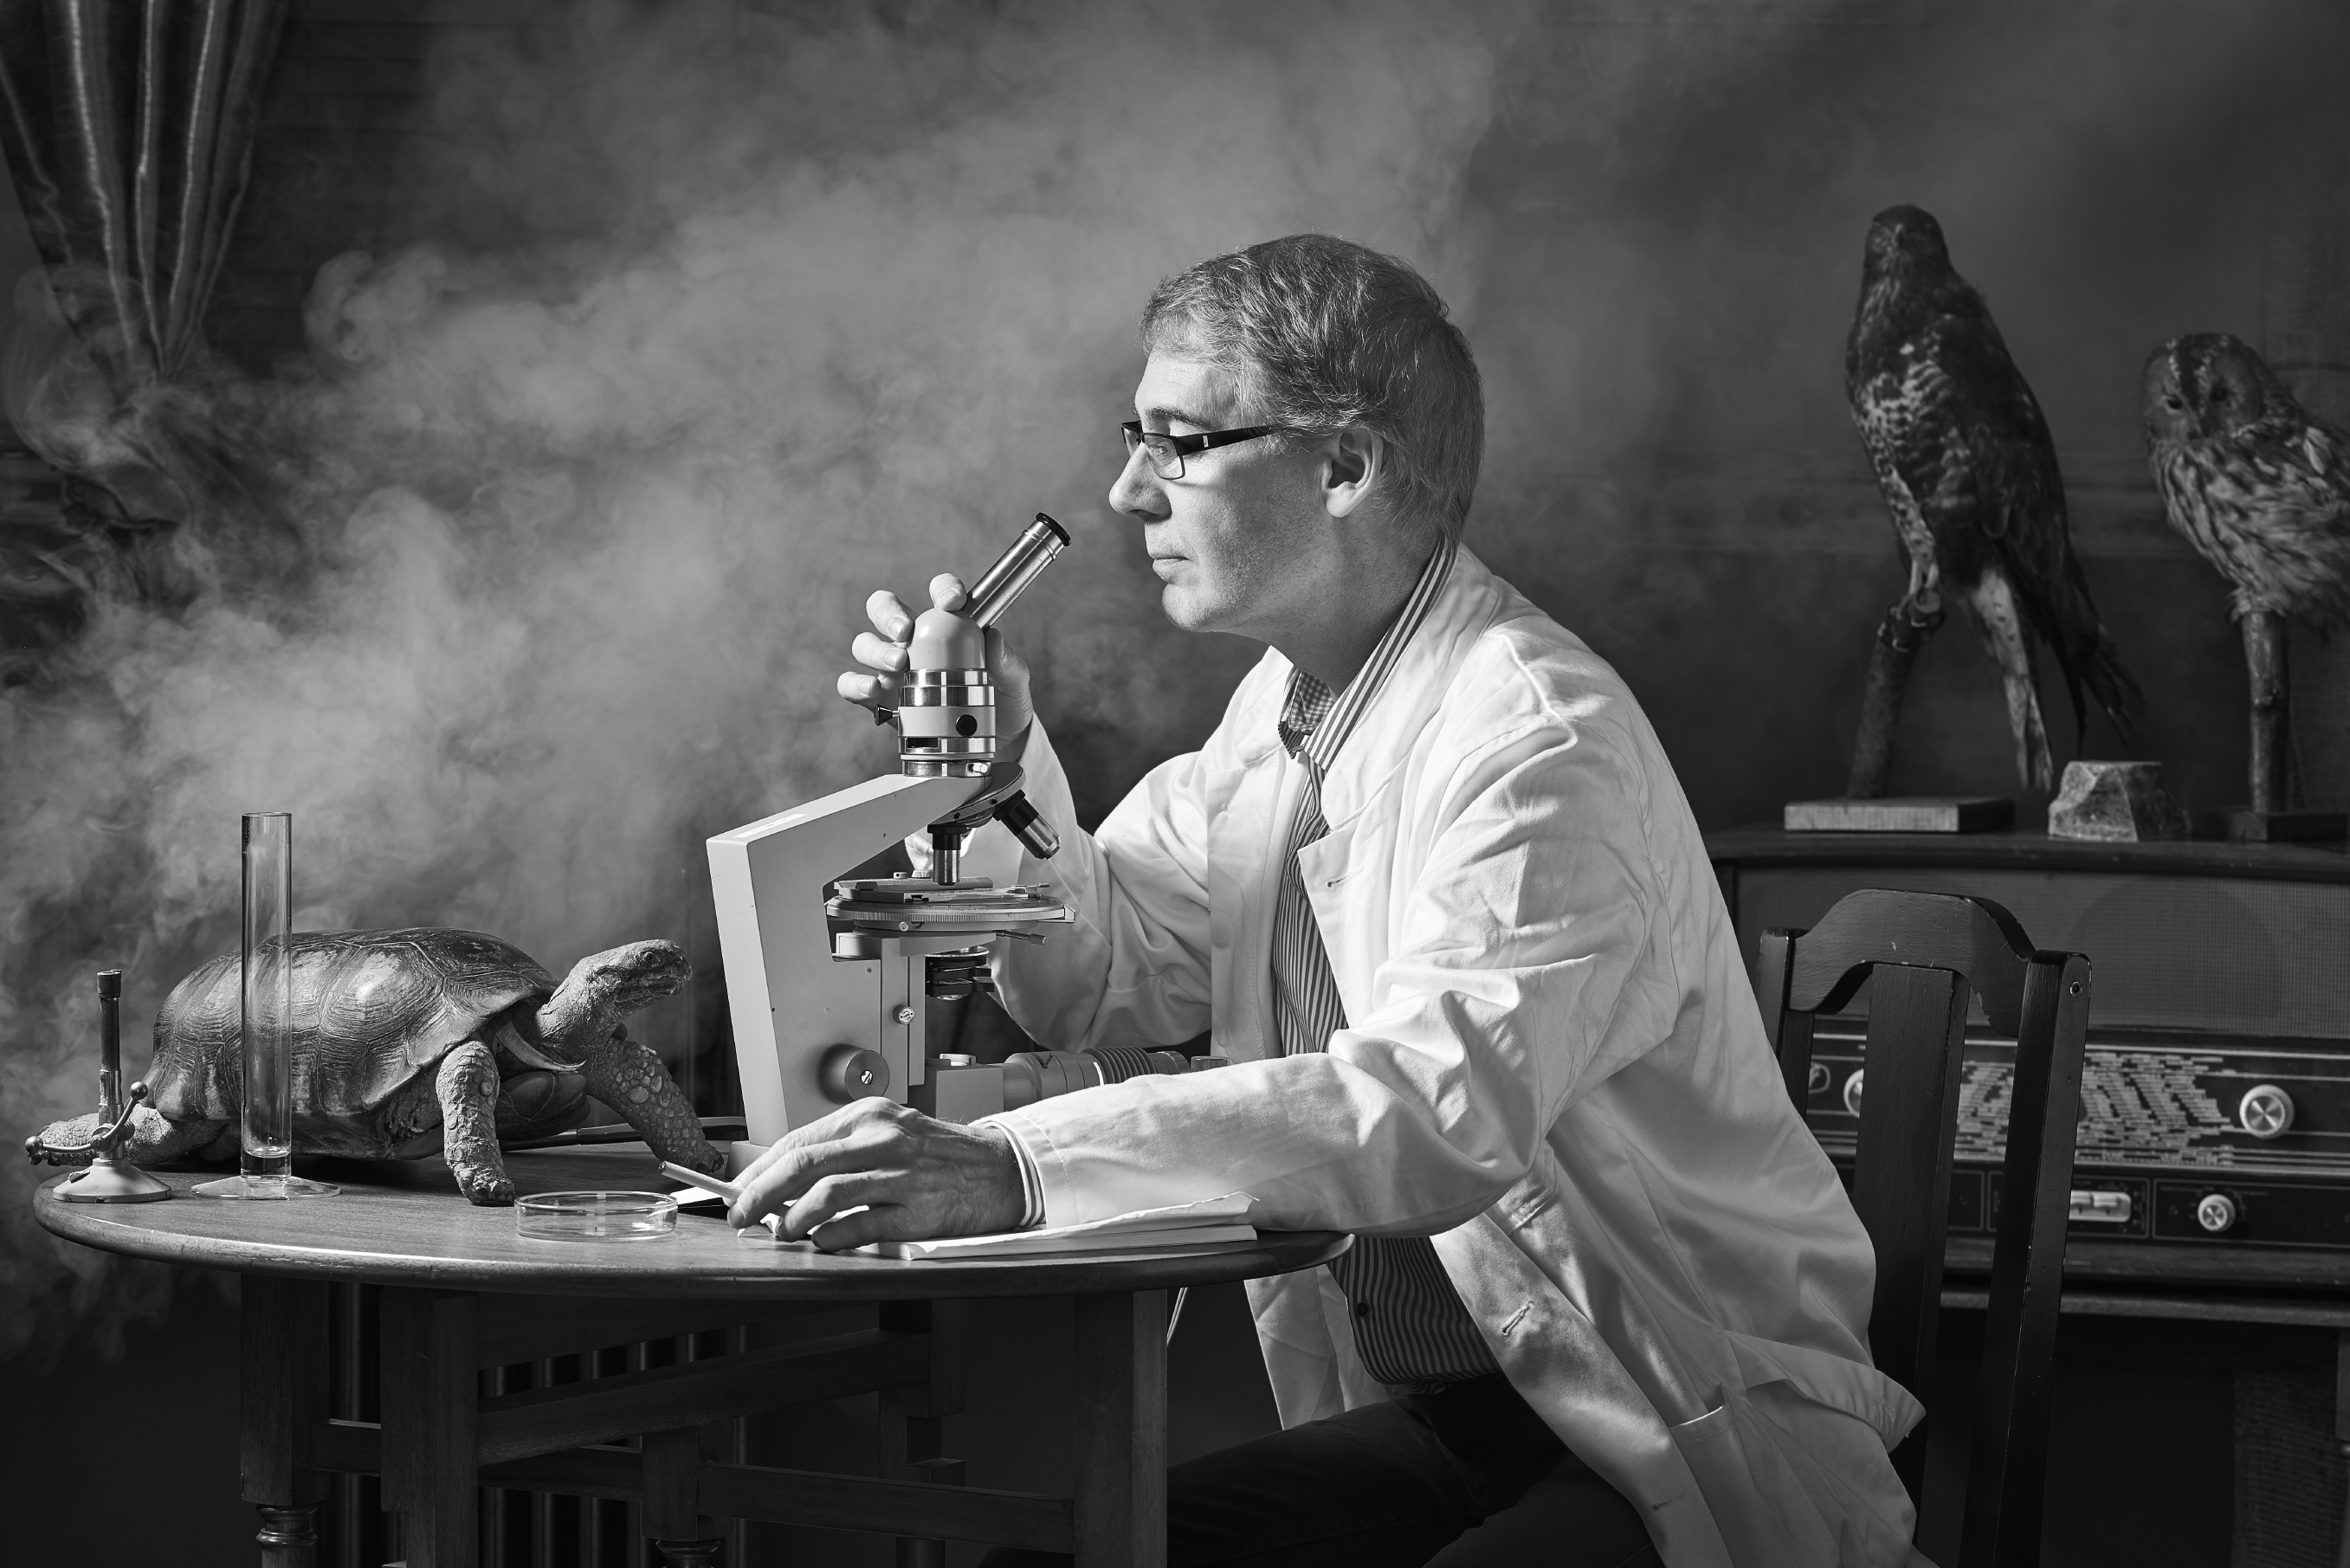 mad-scientist-lab-black-and-white